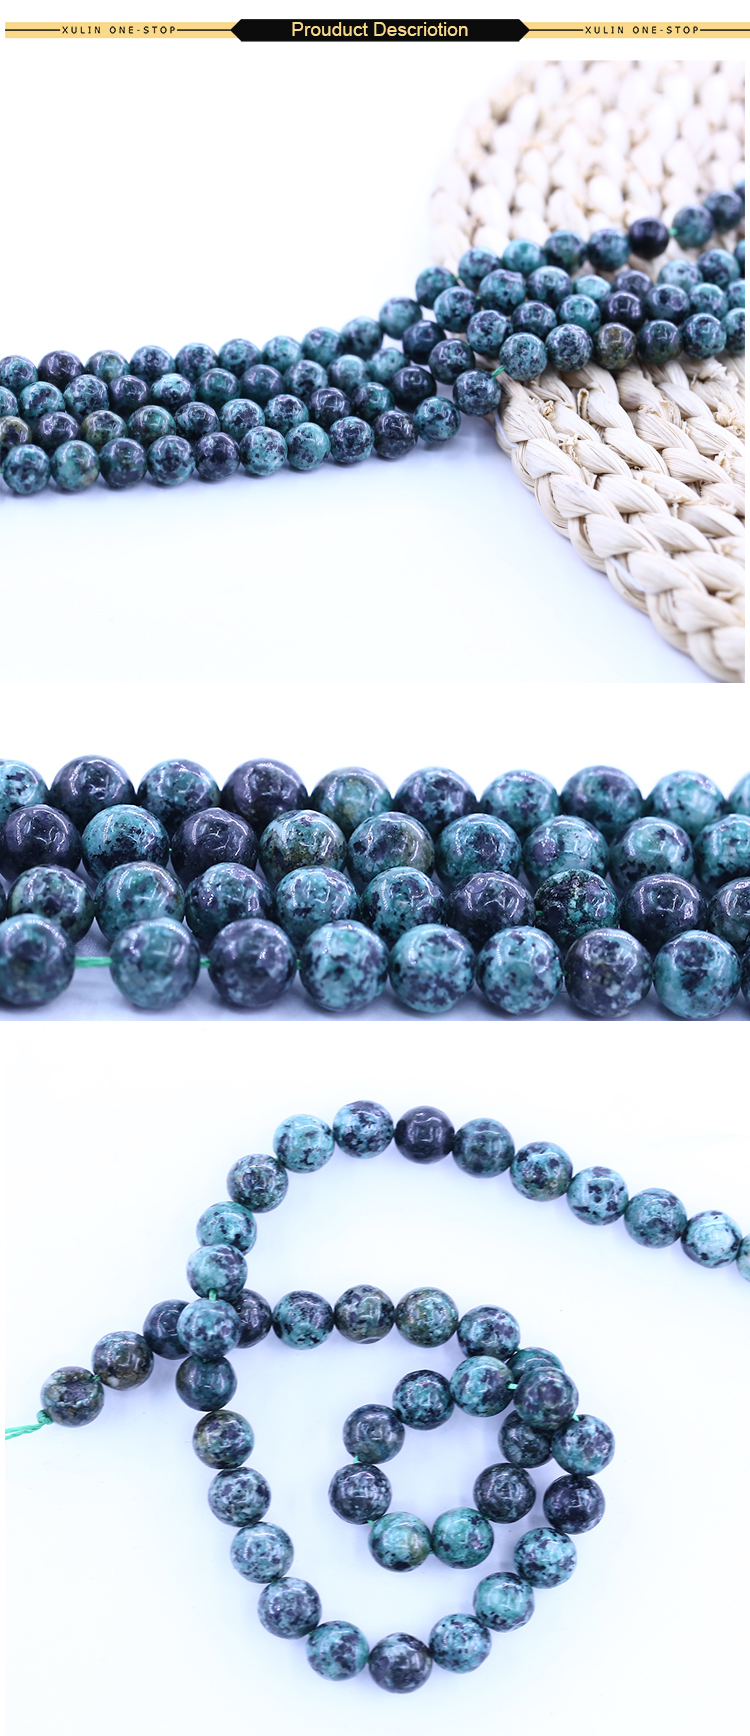 XULIN Natural Gemstone Loose Beads Smooth African Turquoise For DIY Handmade